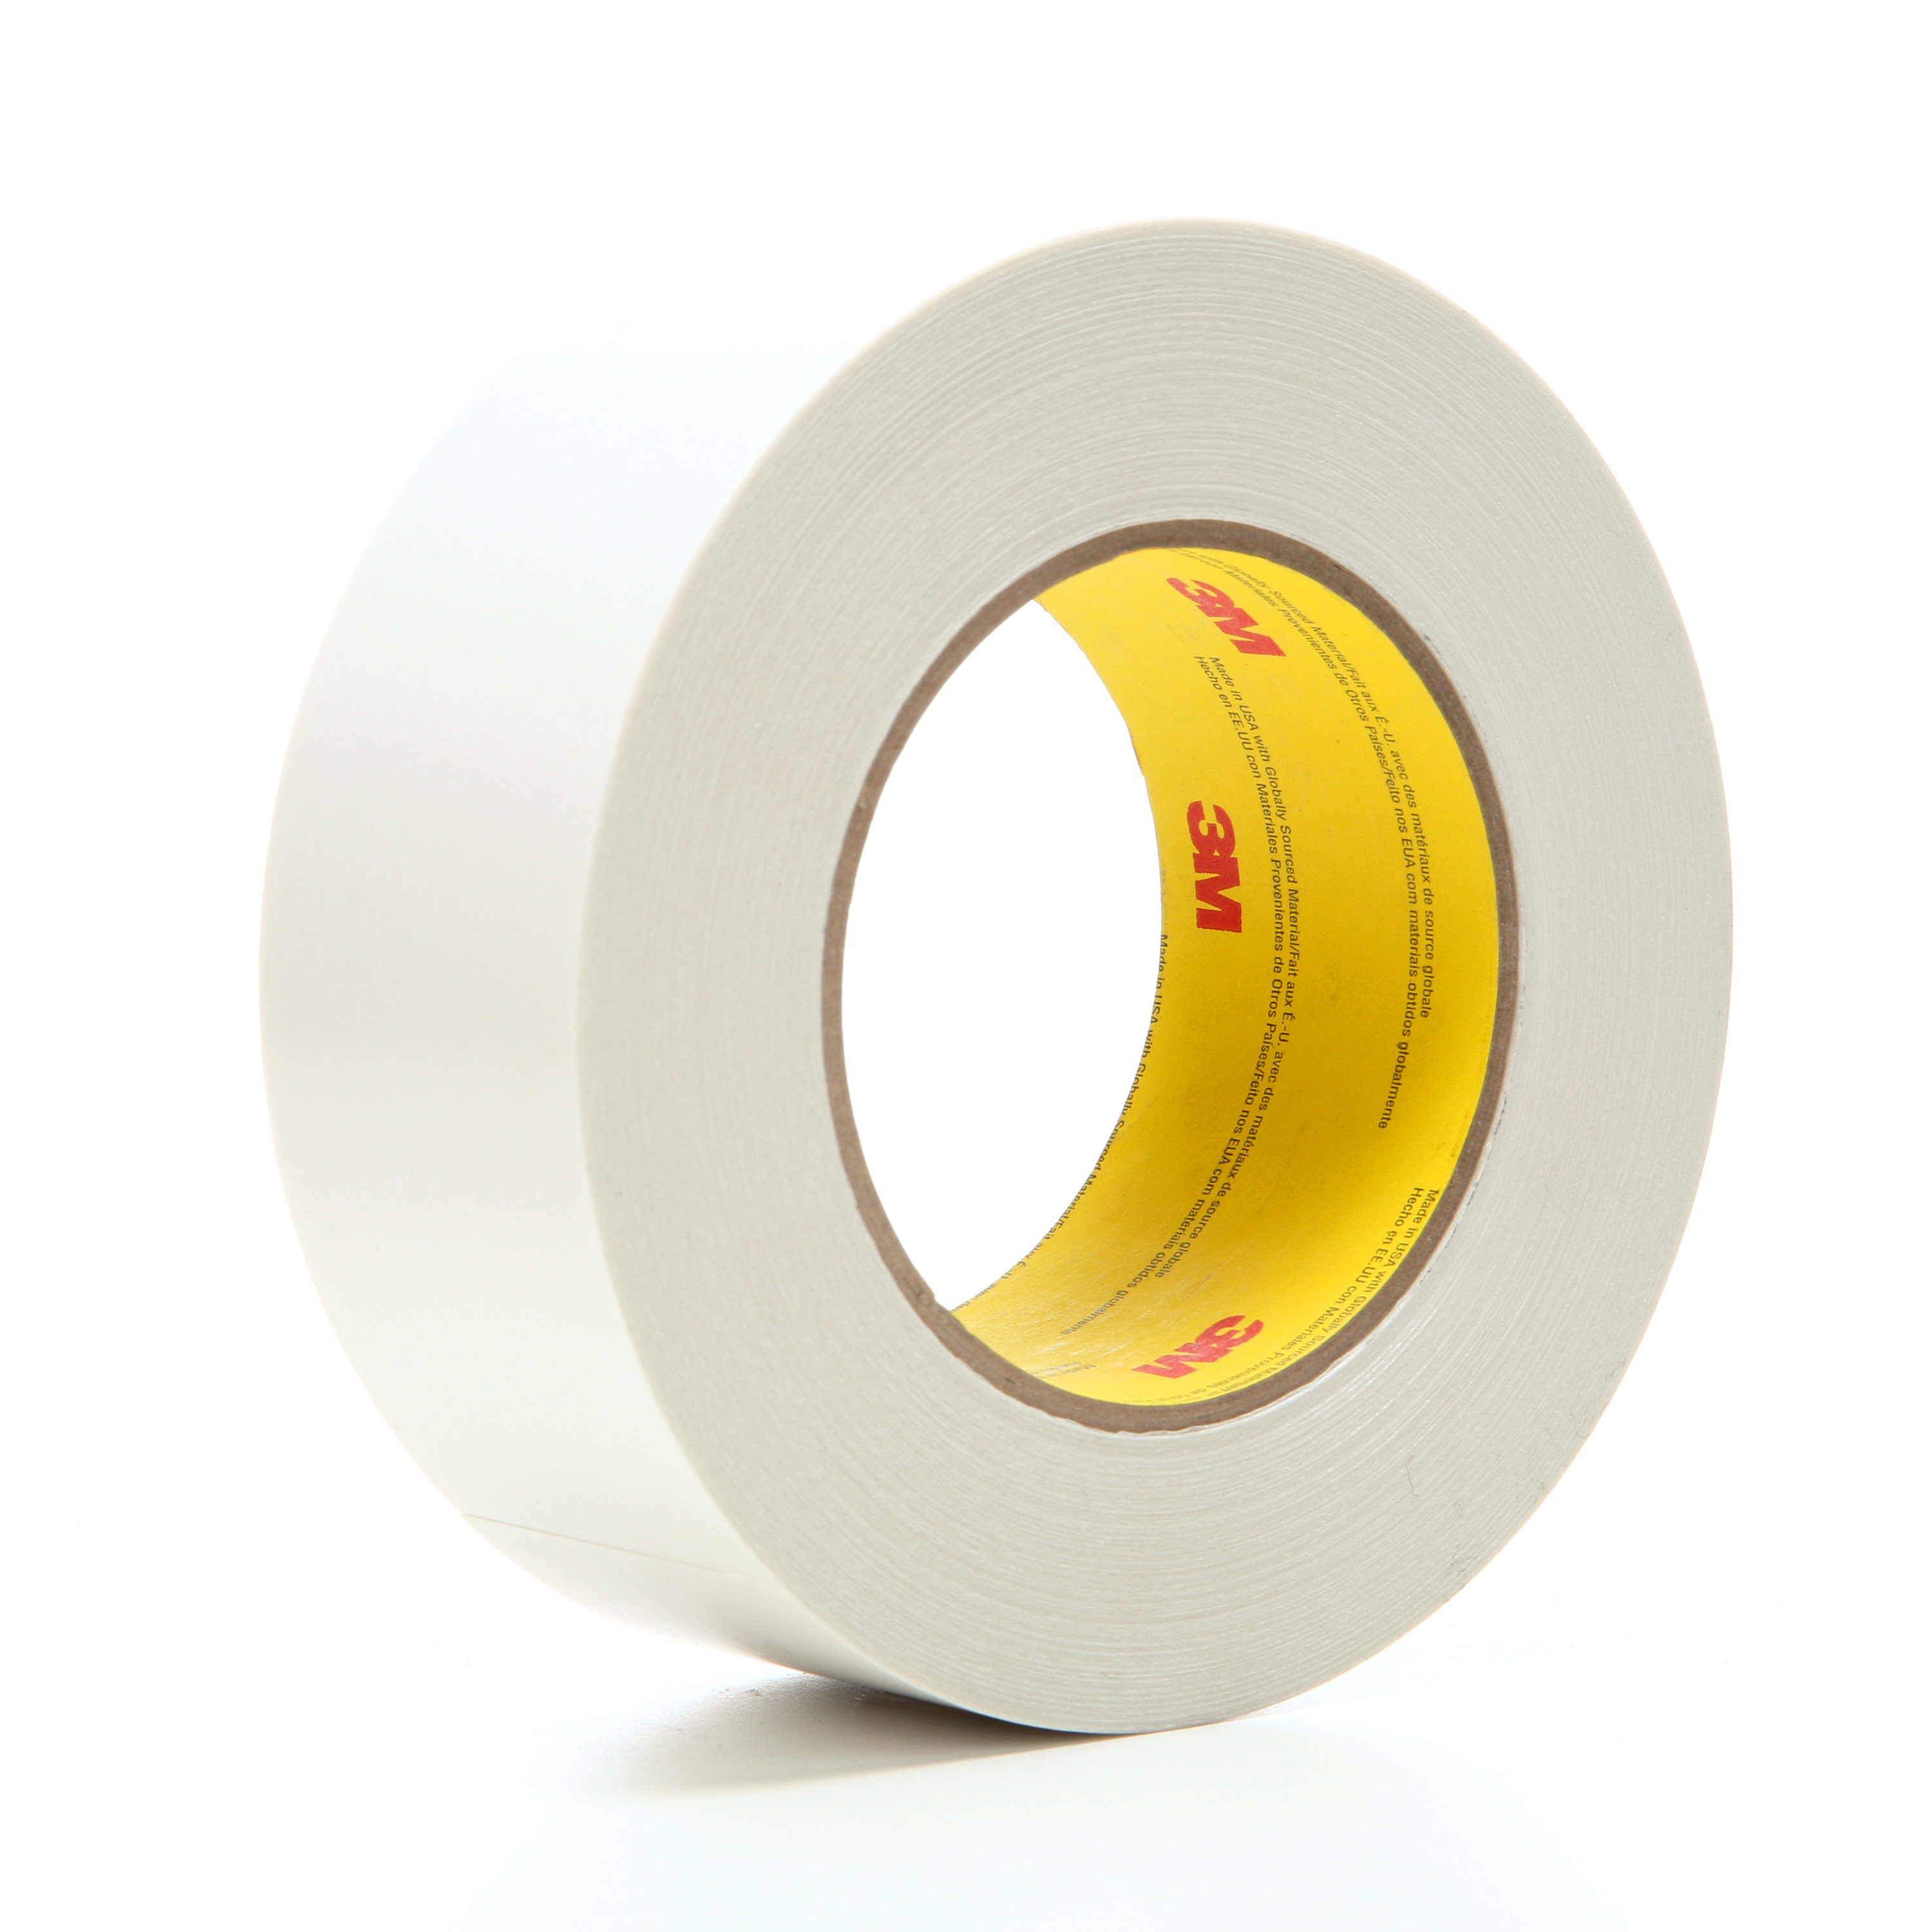 3M™ Double Coated Tape 9738, Clear, 48 mm x 55 m, 4.3 mil, 24 rolls per case